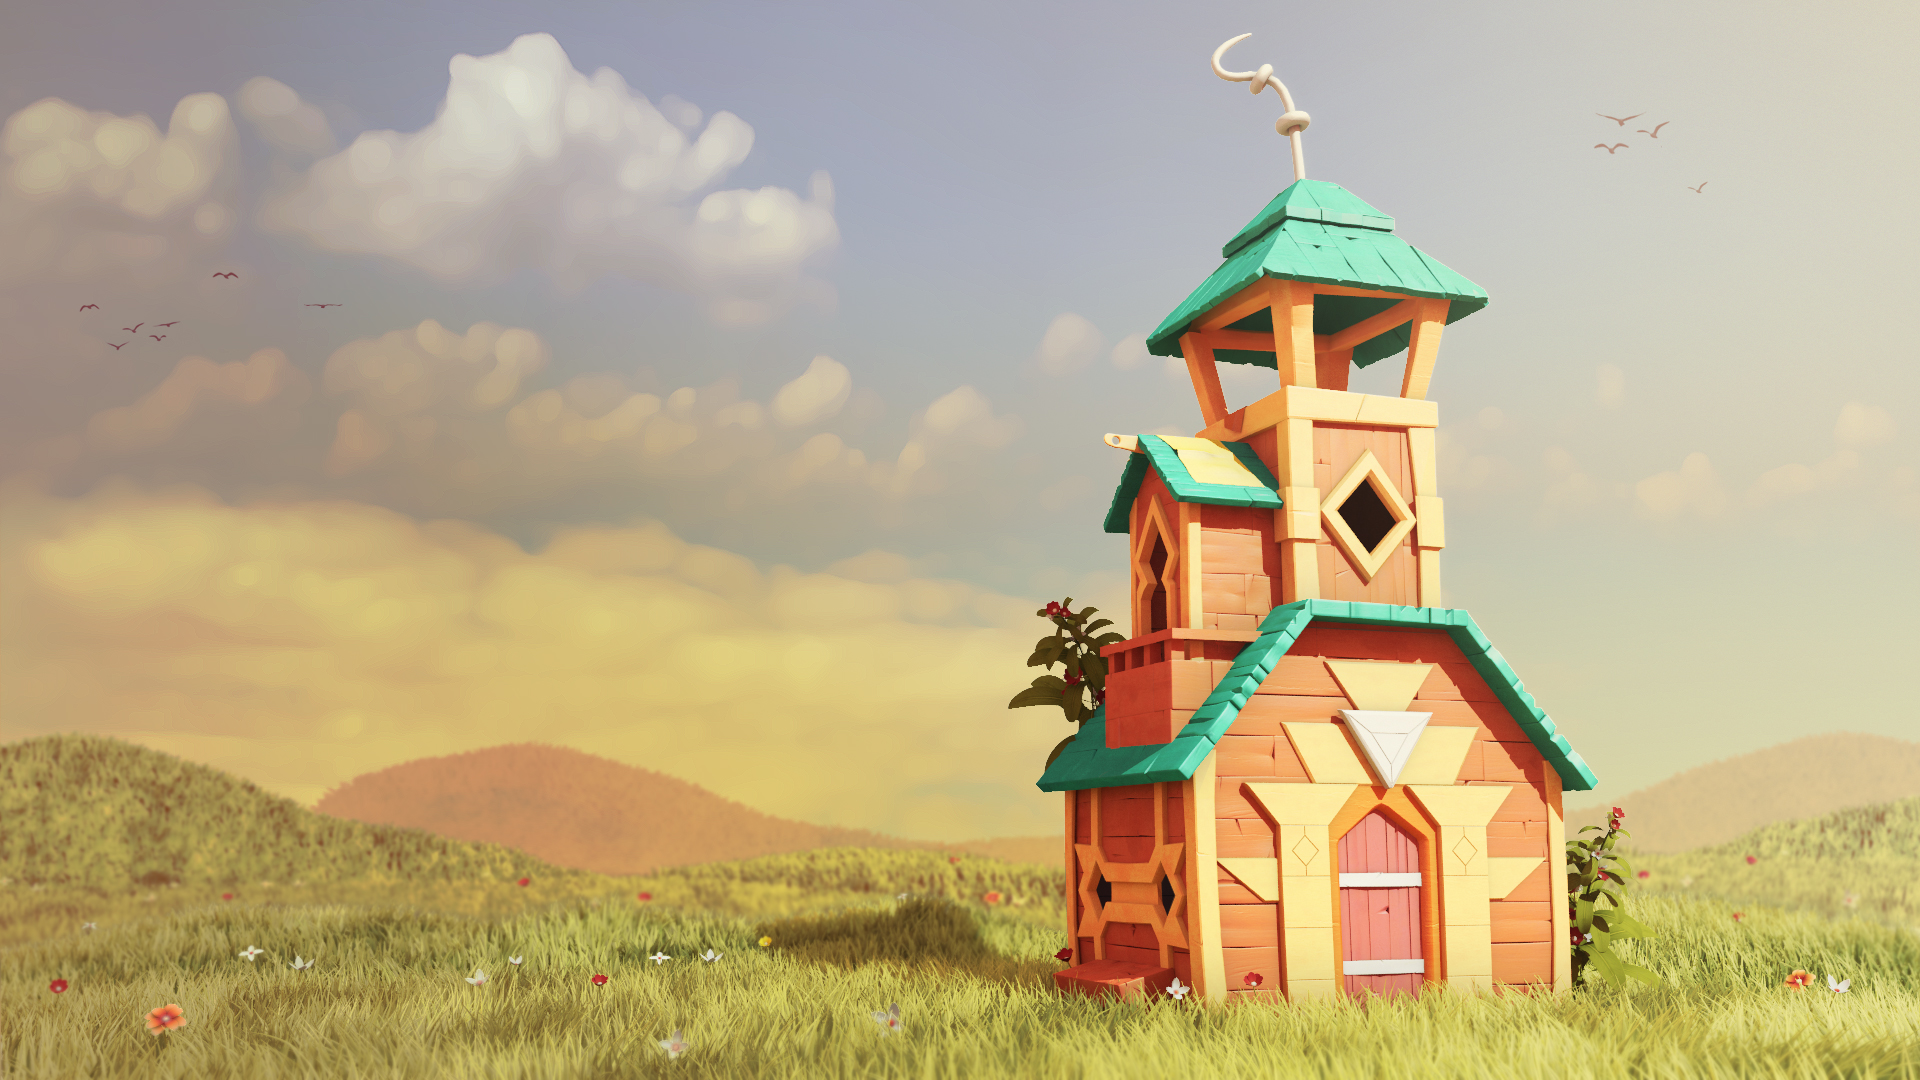 3ds max stylized environment for animation